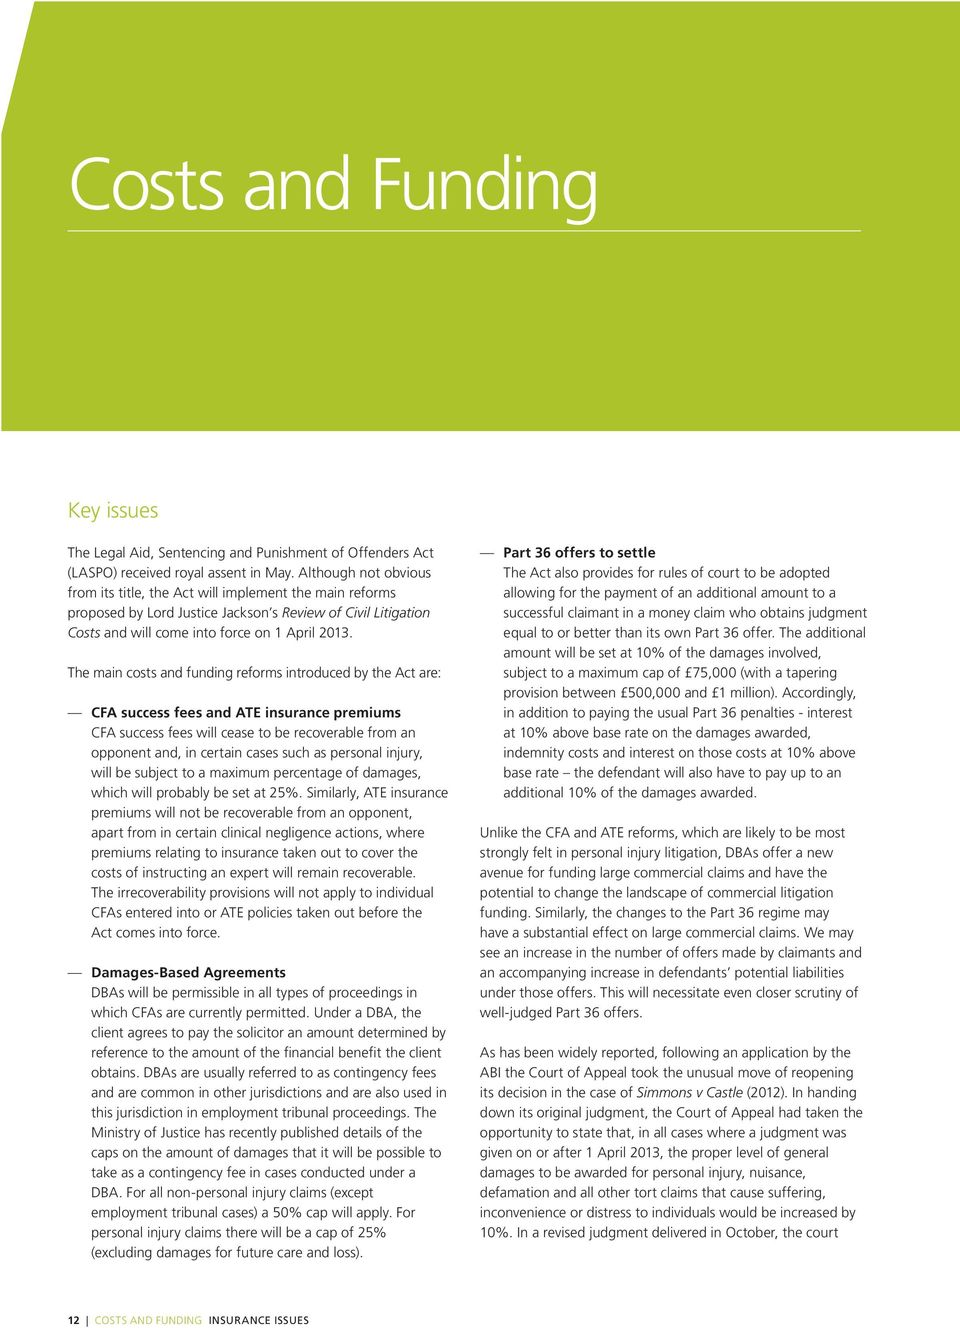 The main costs and funding reforms introduced by the Act are: CFA success fees and ATE insurance premiums CFA success fees will cease to be recoverable from an opponent and, in certain cases such as